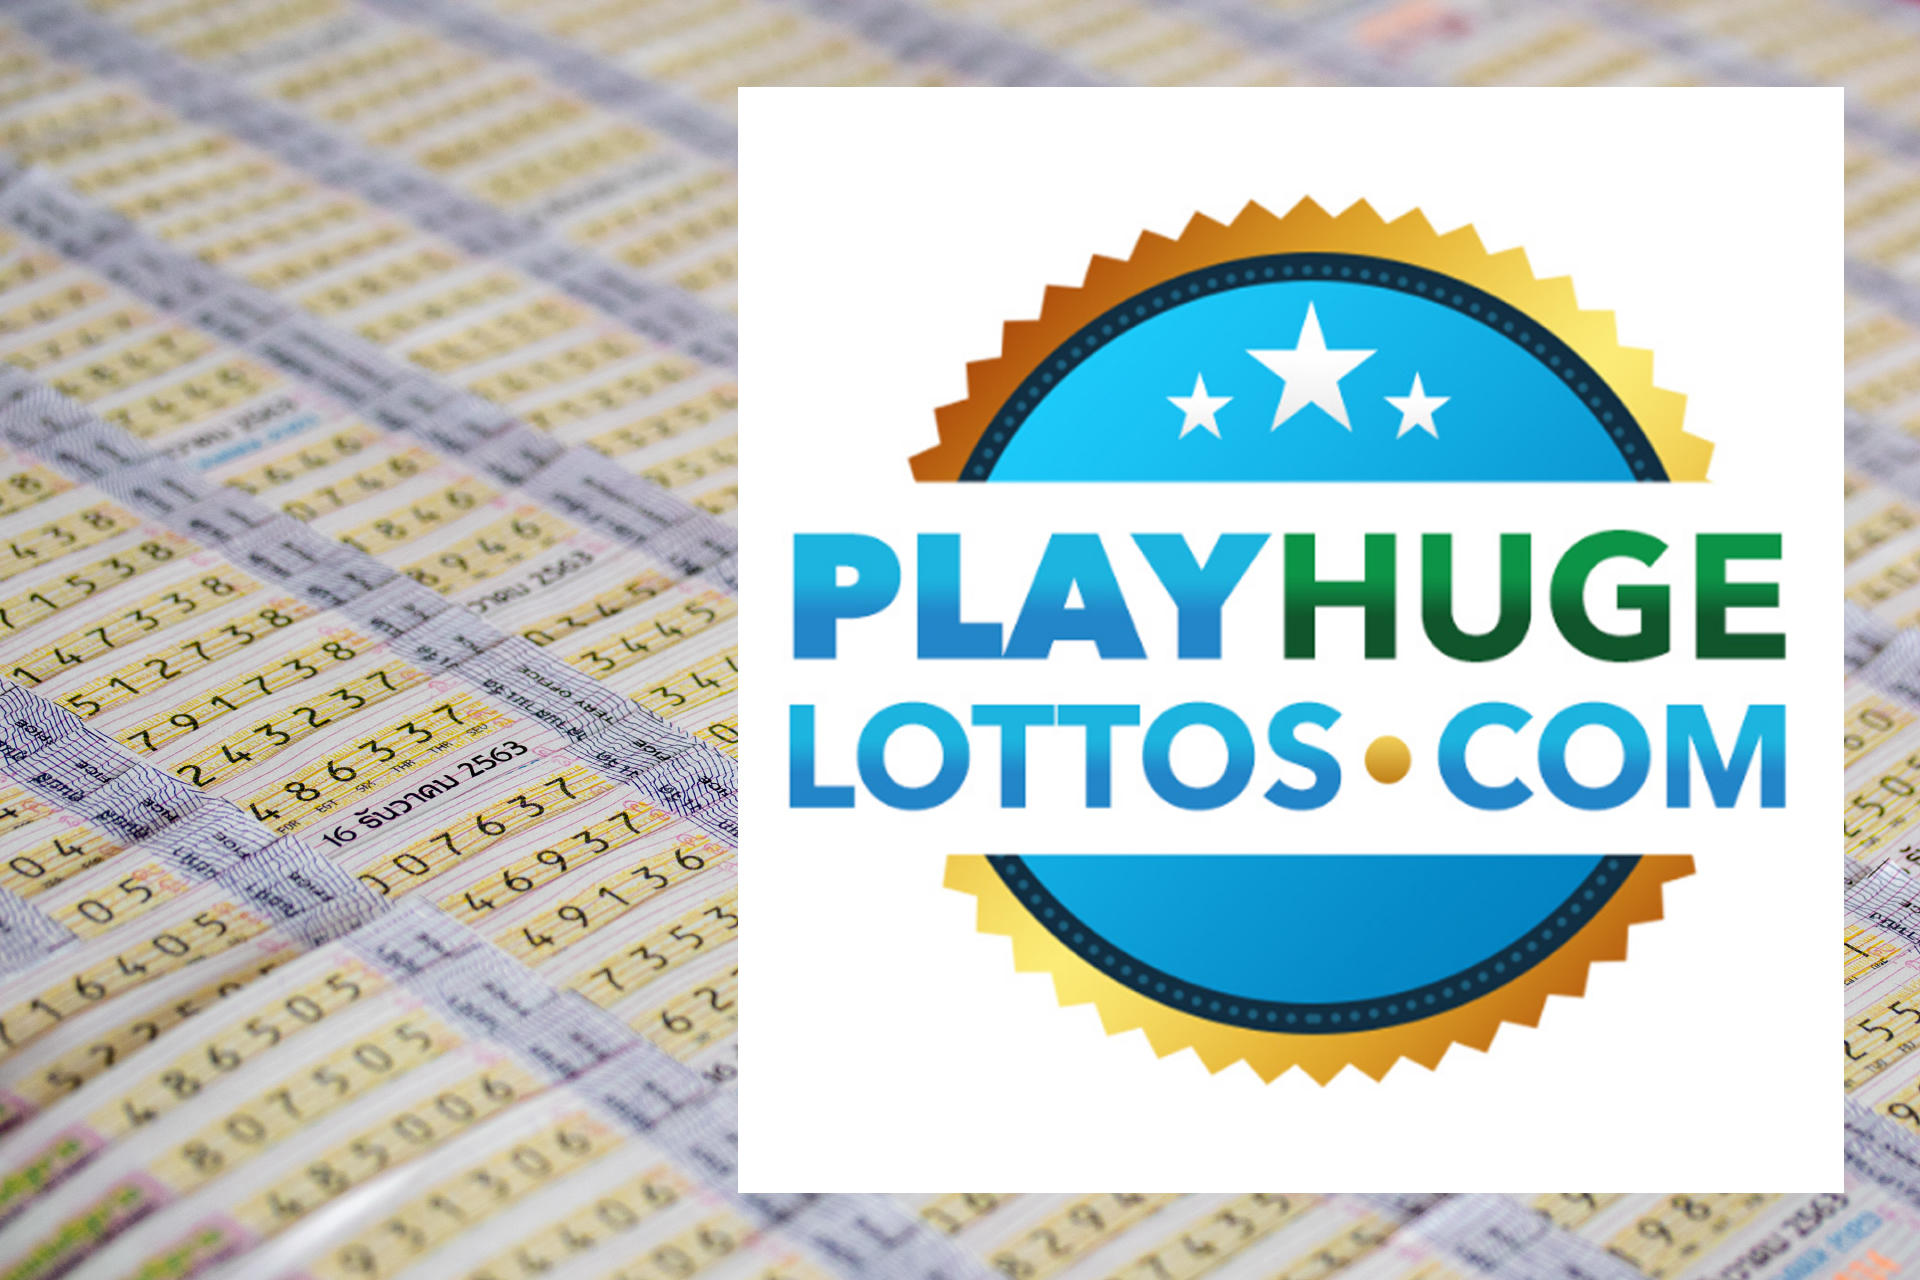 PlayHugeLottos offers a convenient loyalty program for online lottery fans.